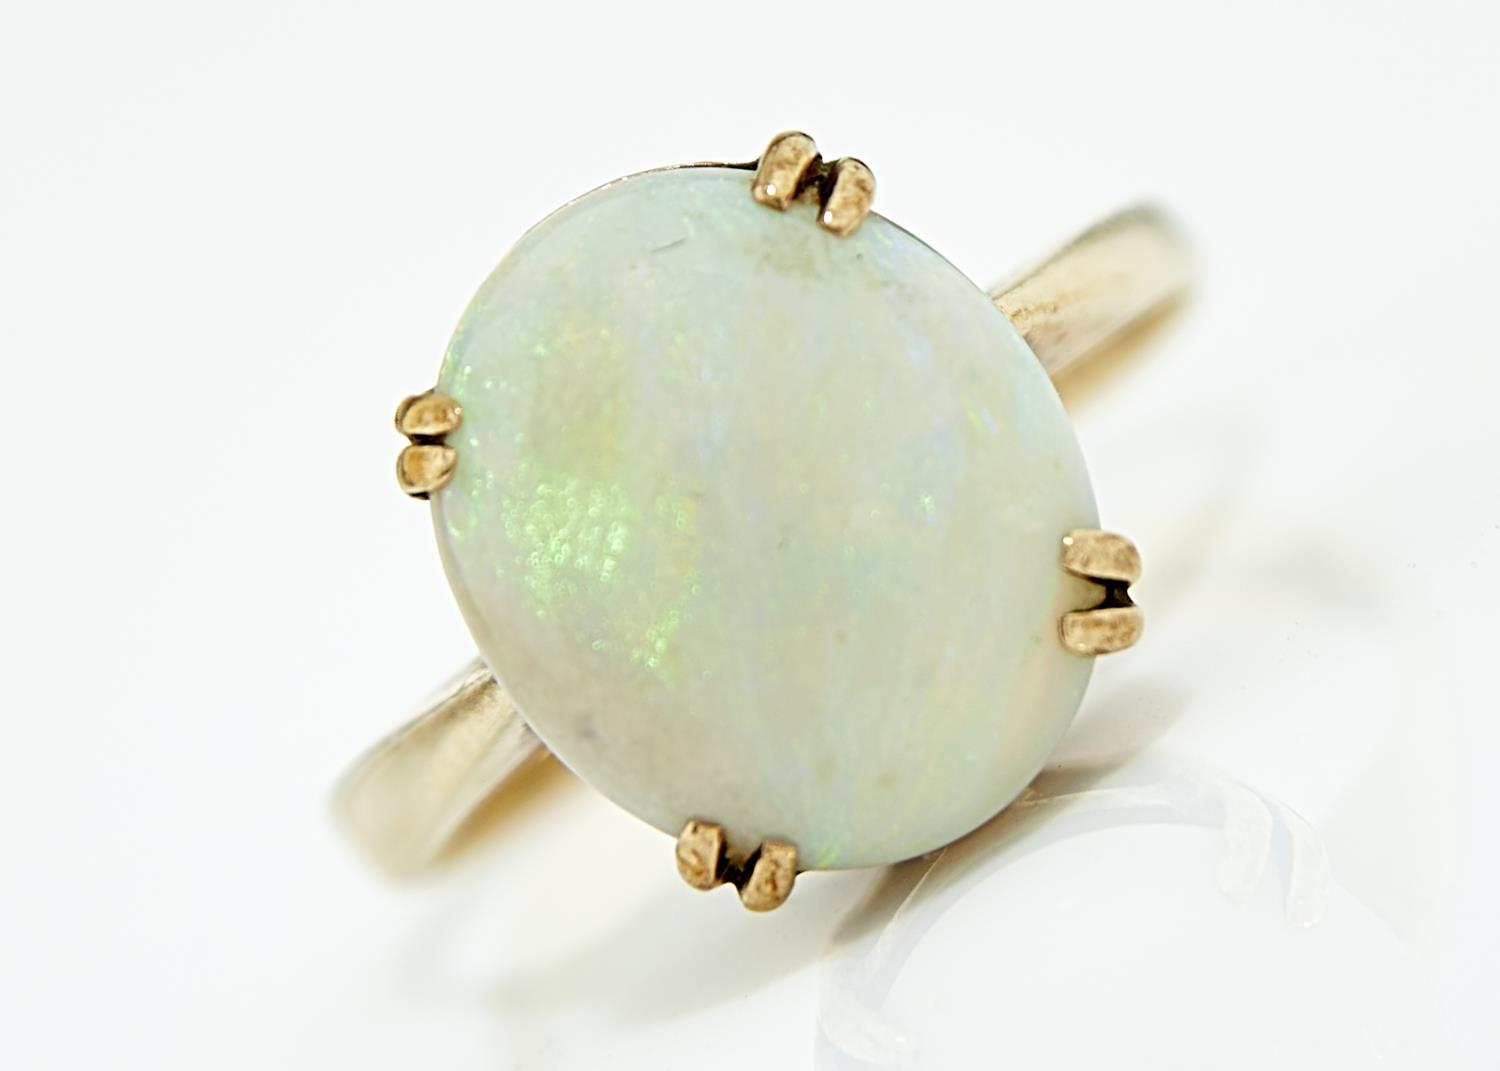 AN OPAL RING, THE CABOCHON 11 X 13MM, IN 9CT GOLD, EDINBOROUGH 1978, 4G, SIZE O Opal of good